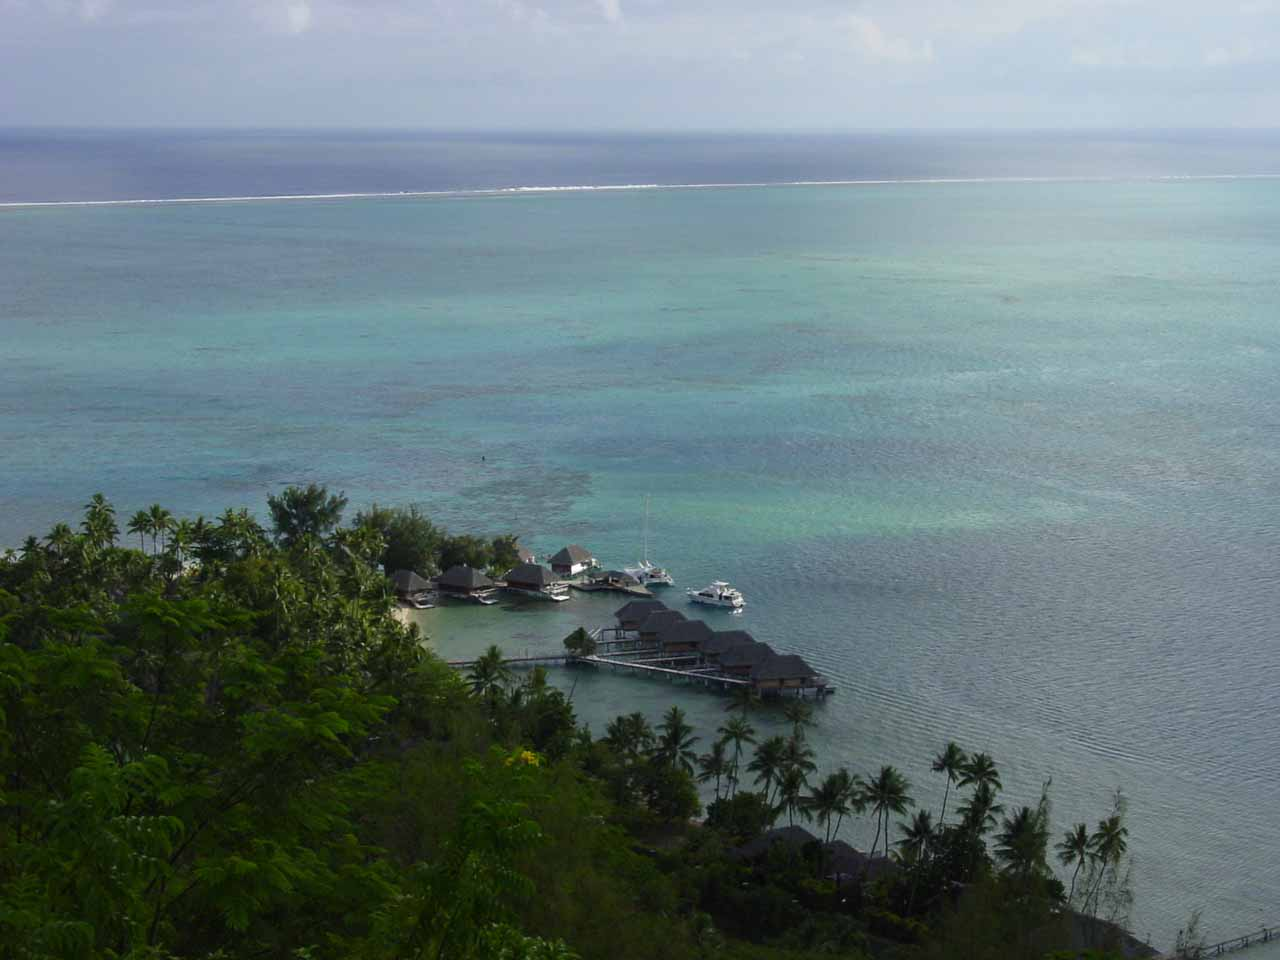 Looking over part of the old Bora Bora Hotel and some of its lagoons back in 2002